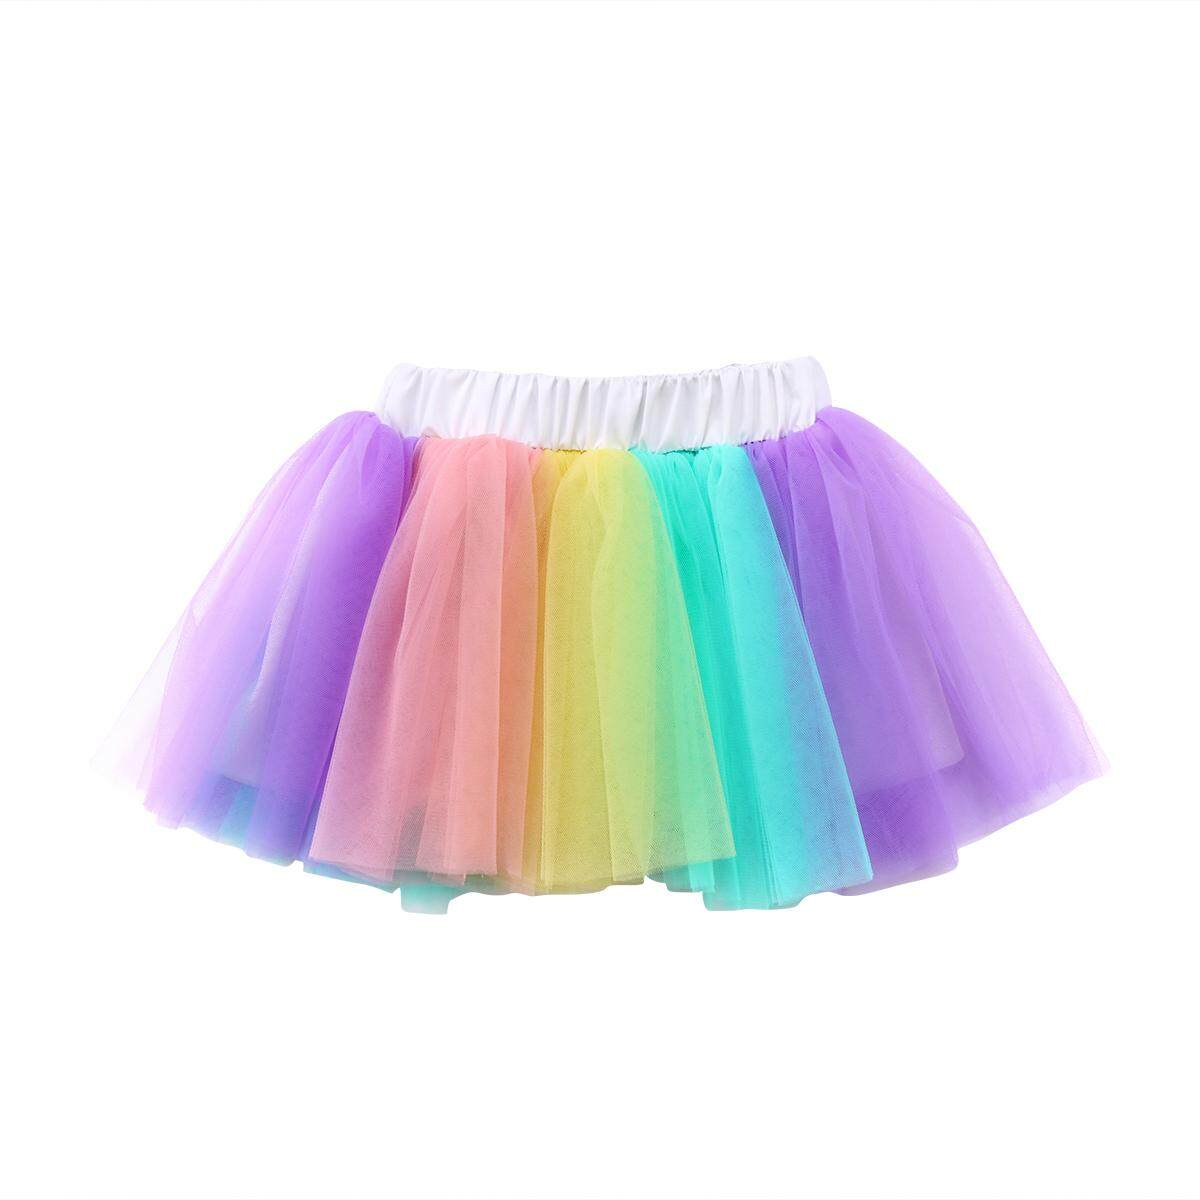 b51dcb14a Adorable Kids Baby Girls Iridescence Tulle Tutu Skirt Dress Dancewear  Costume